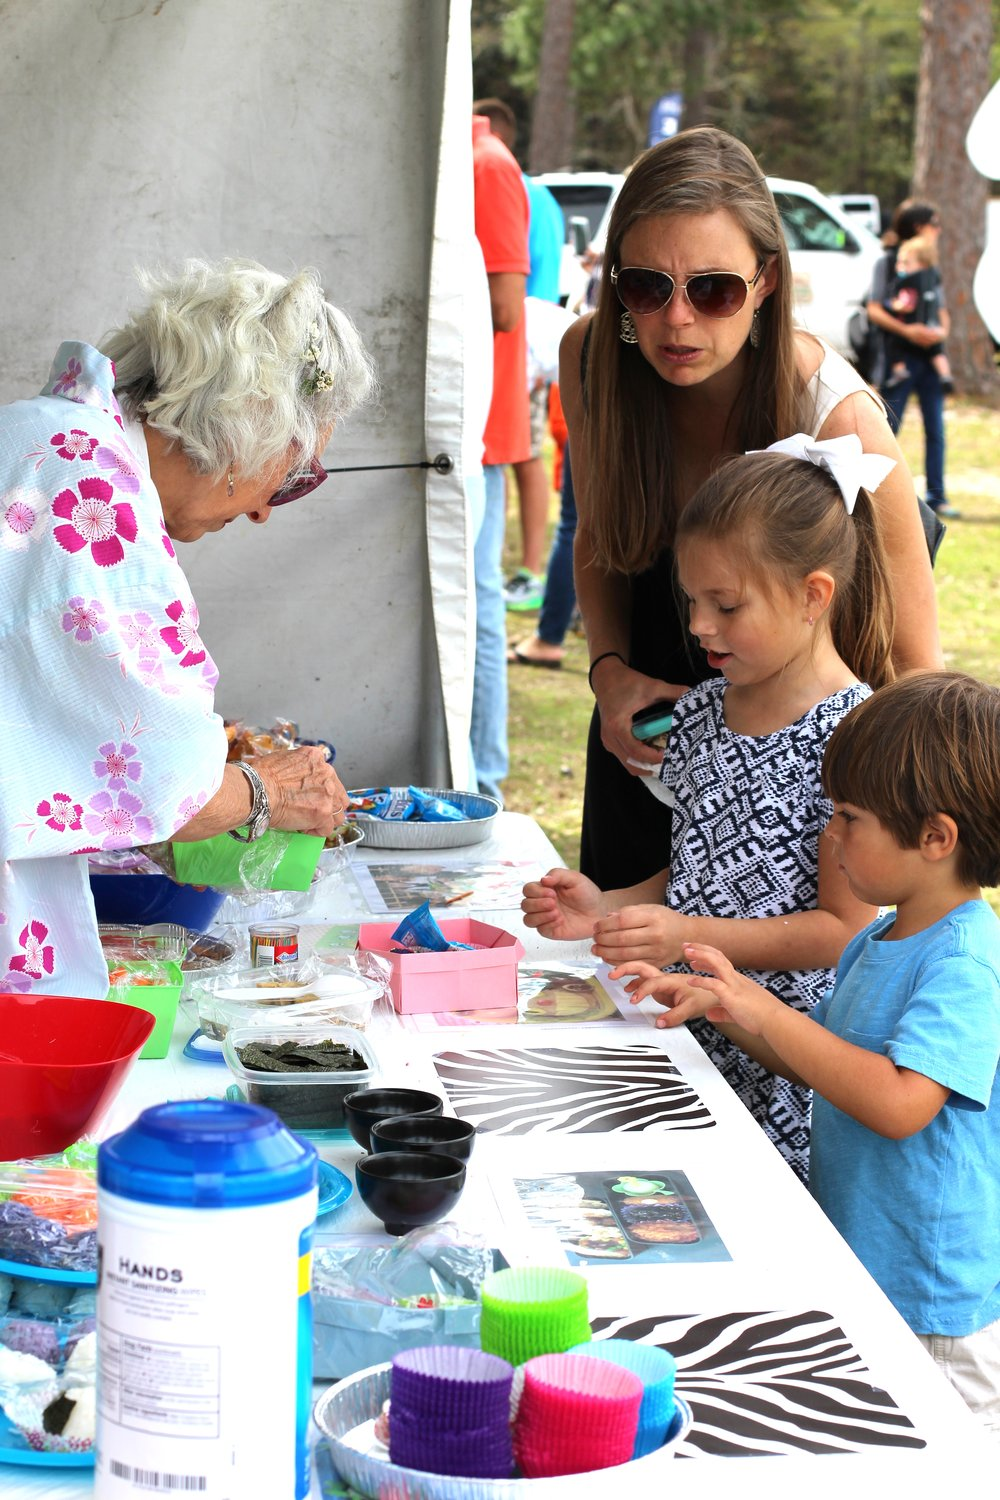 Kids' Art Alley offers young festival goers plenty of hands-on fun. Children can dig their fingers into clay, make sand art, enjoy games, watch live demonstrations and take home their own works of art.